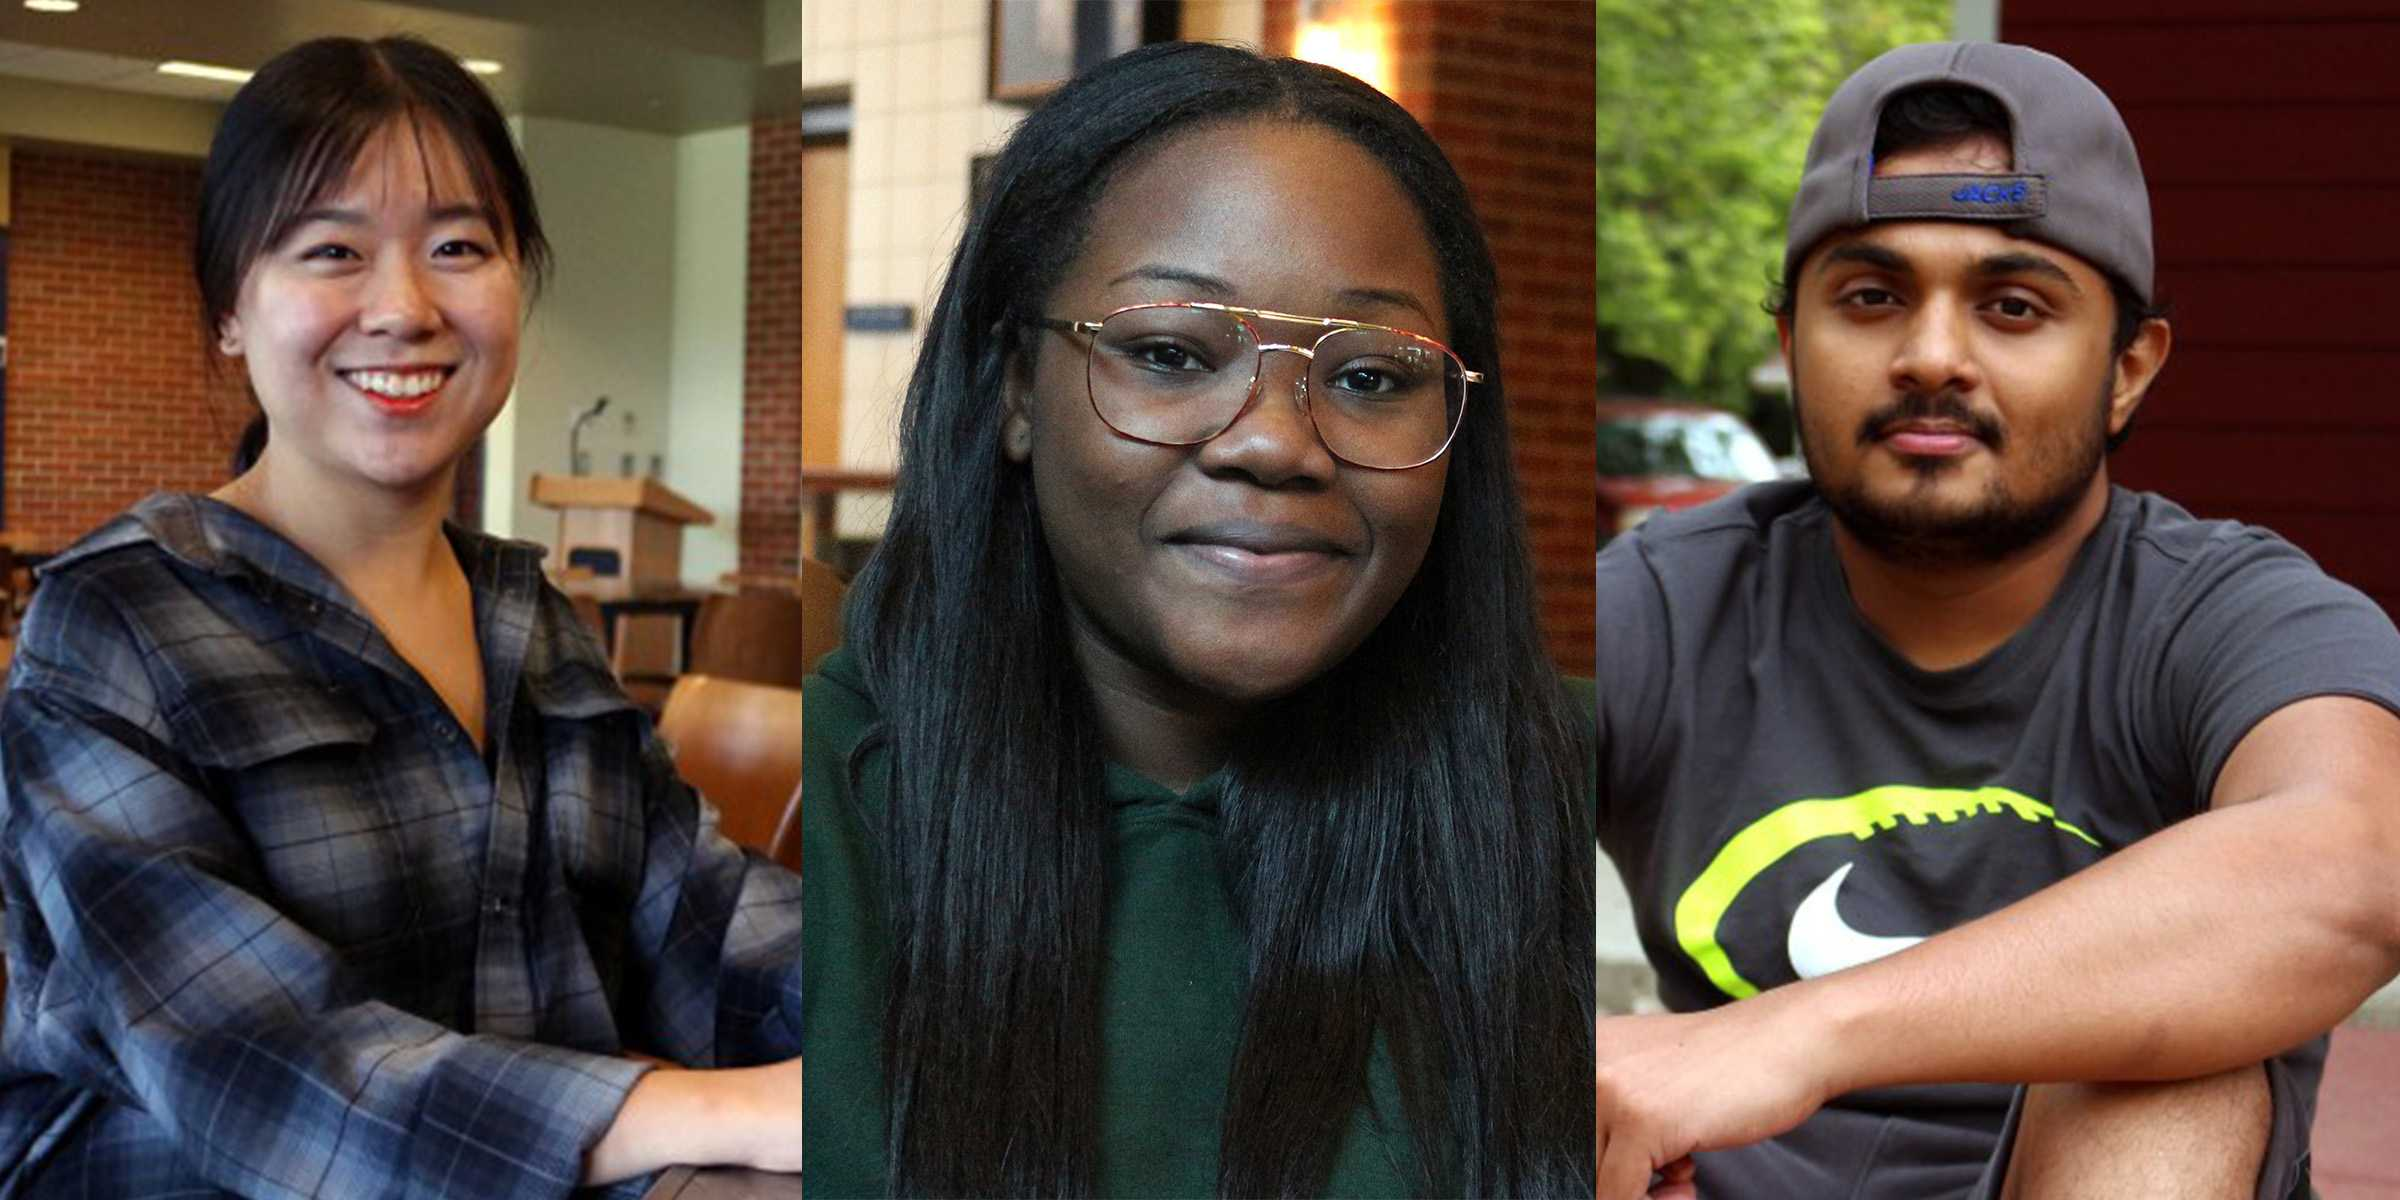 IAN LACK (Left to right) International students Kathy Oh from South Korea, Grace Kavunge from Ivory Coast, Africa and Kaveen Jayamanna from Sri Lanka